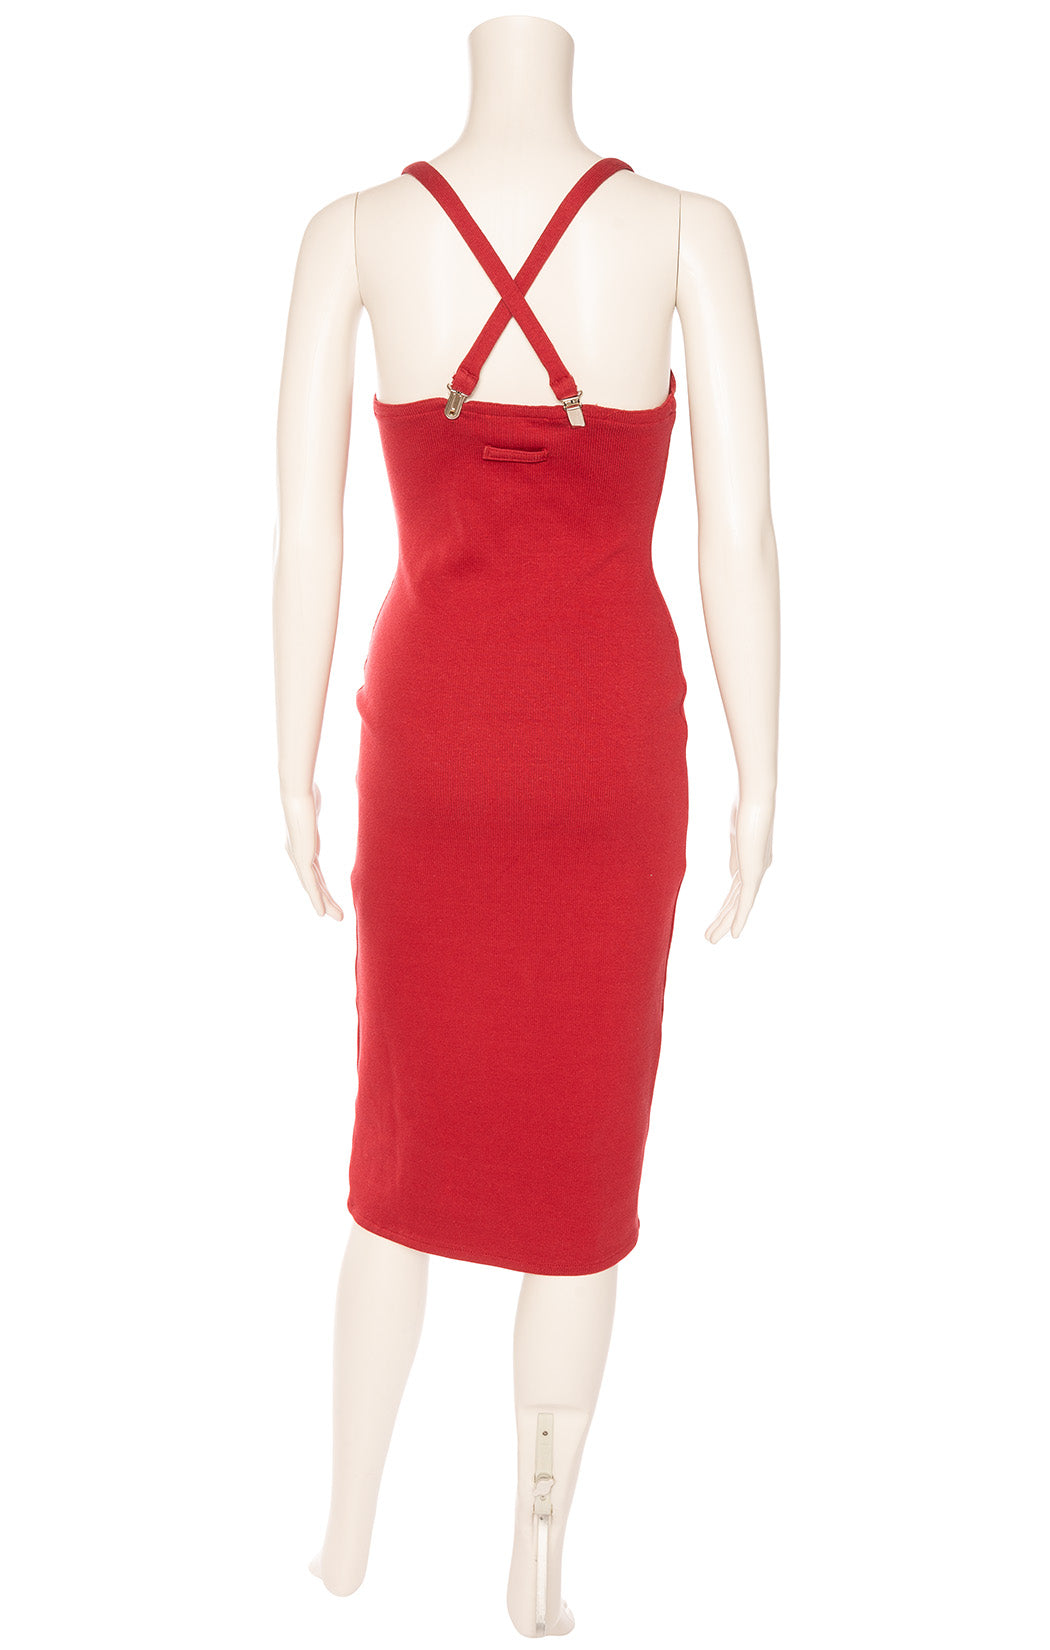 JEAN PAUL GAULTIER with tags  Dress Size: FR 40 (comparable to US 8)